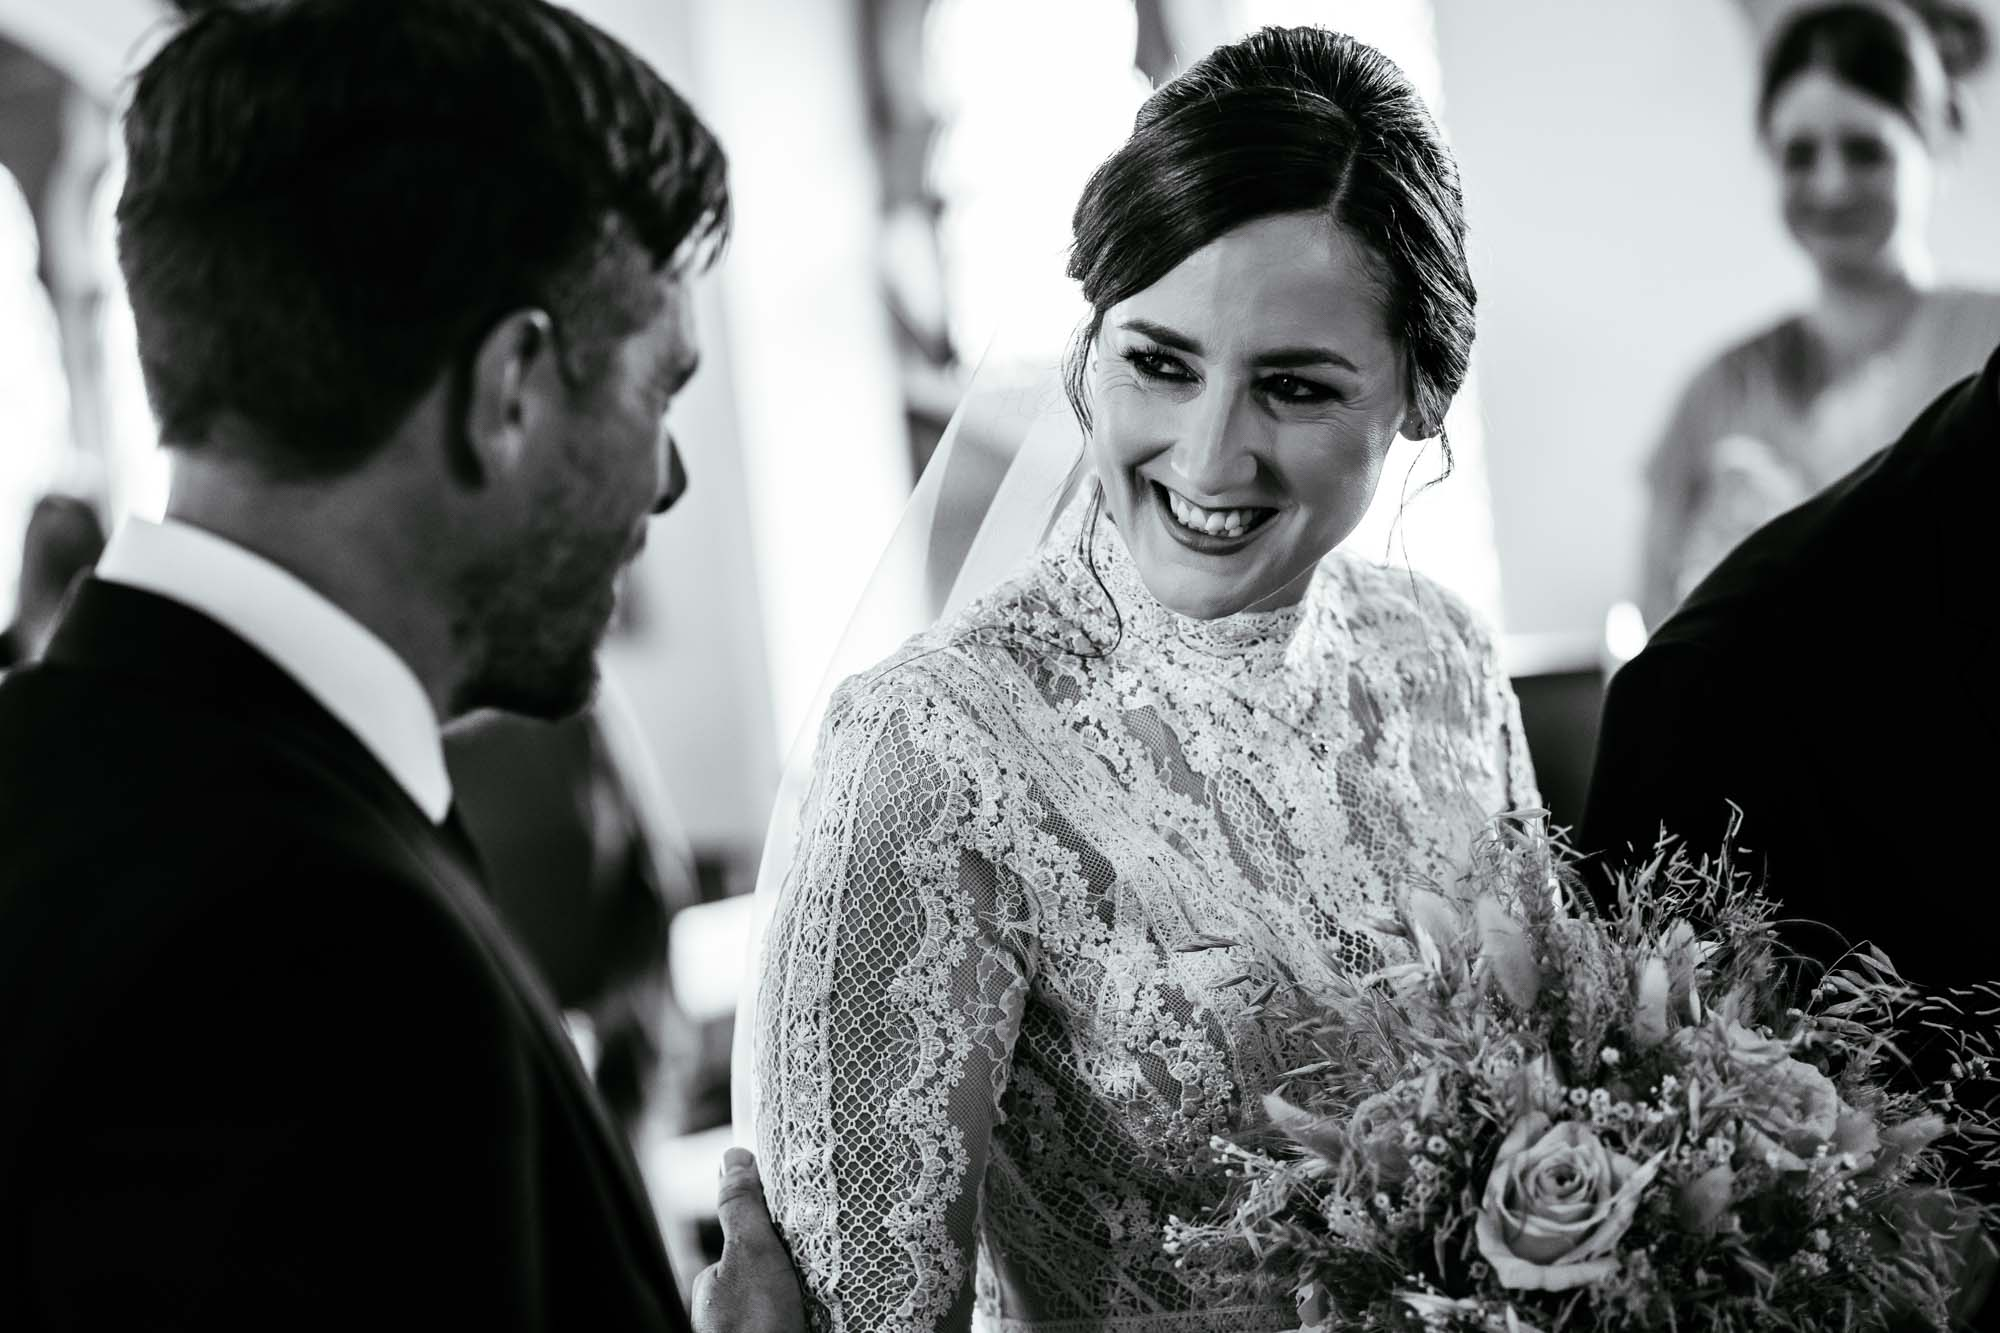 Bride smiling at groom in church